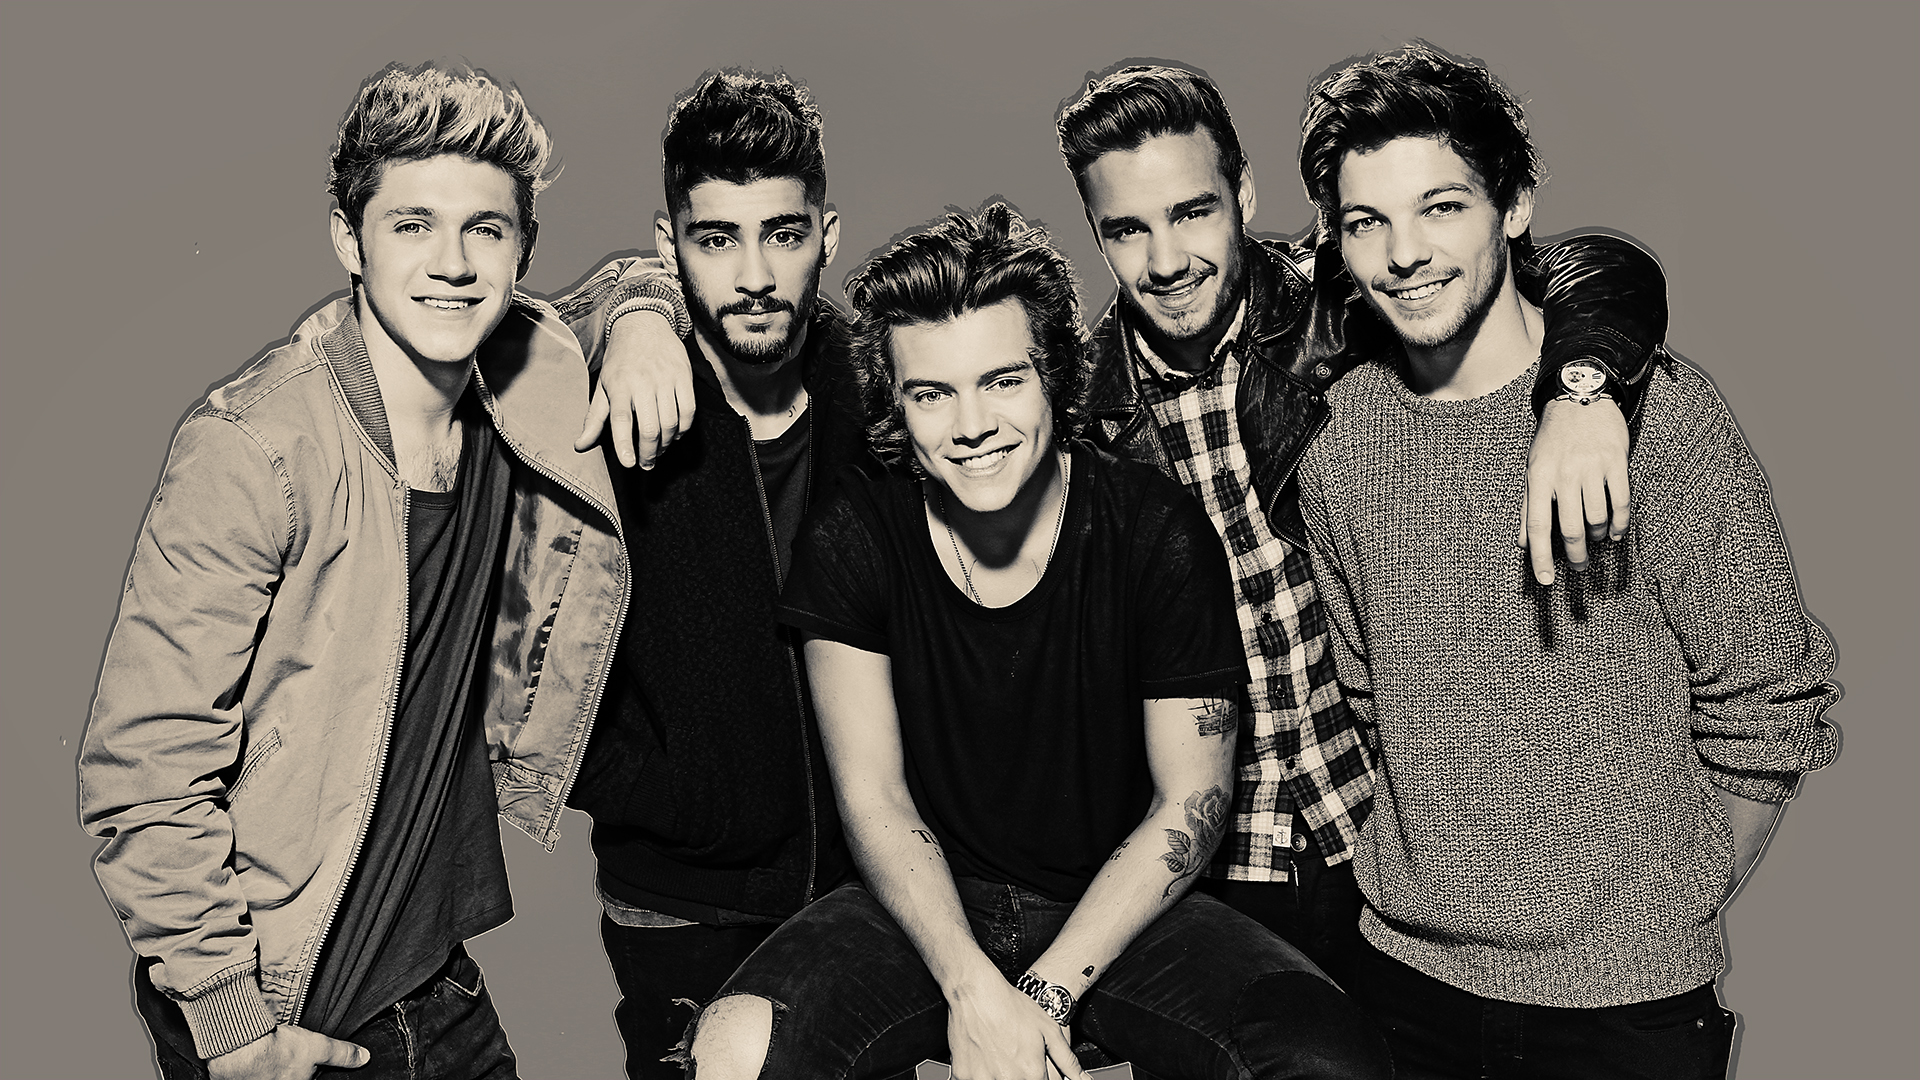 Black and white One Direction Wallpapers HD.